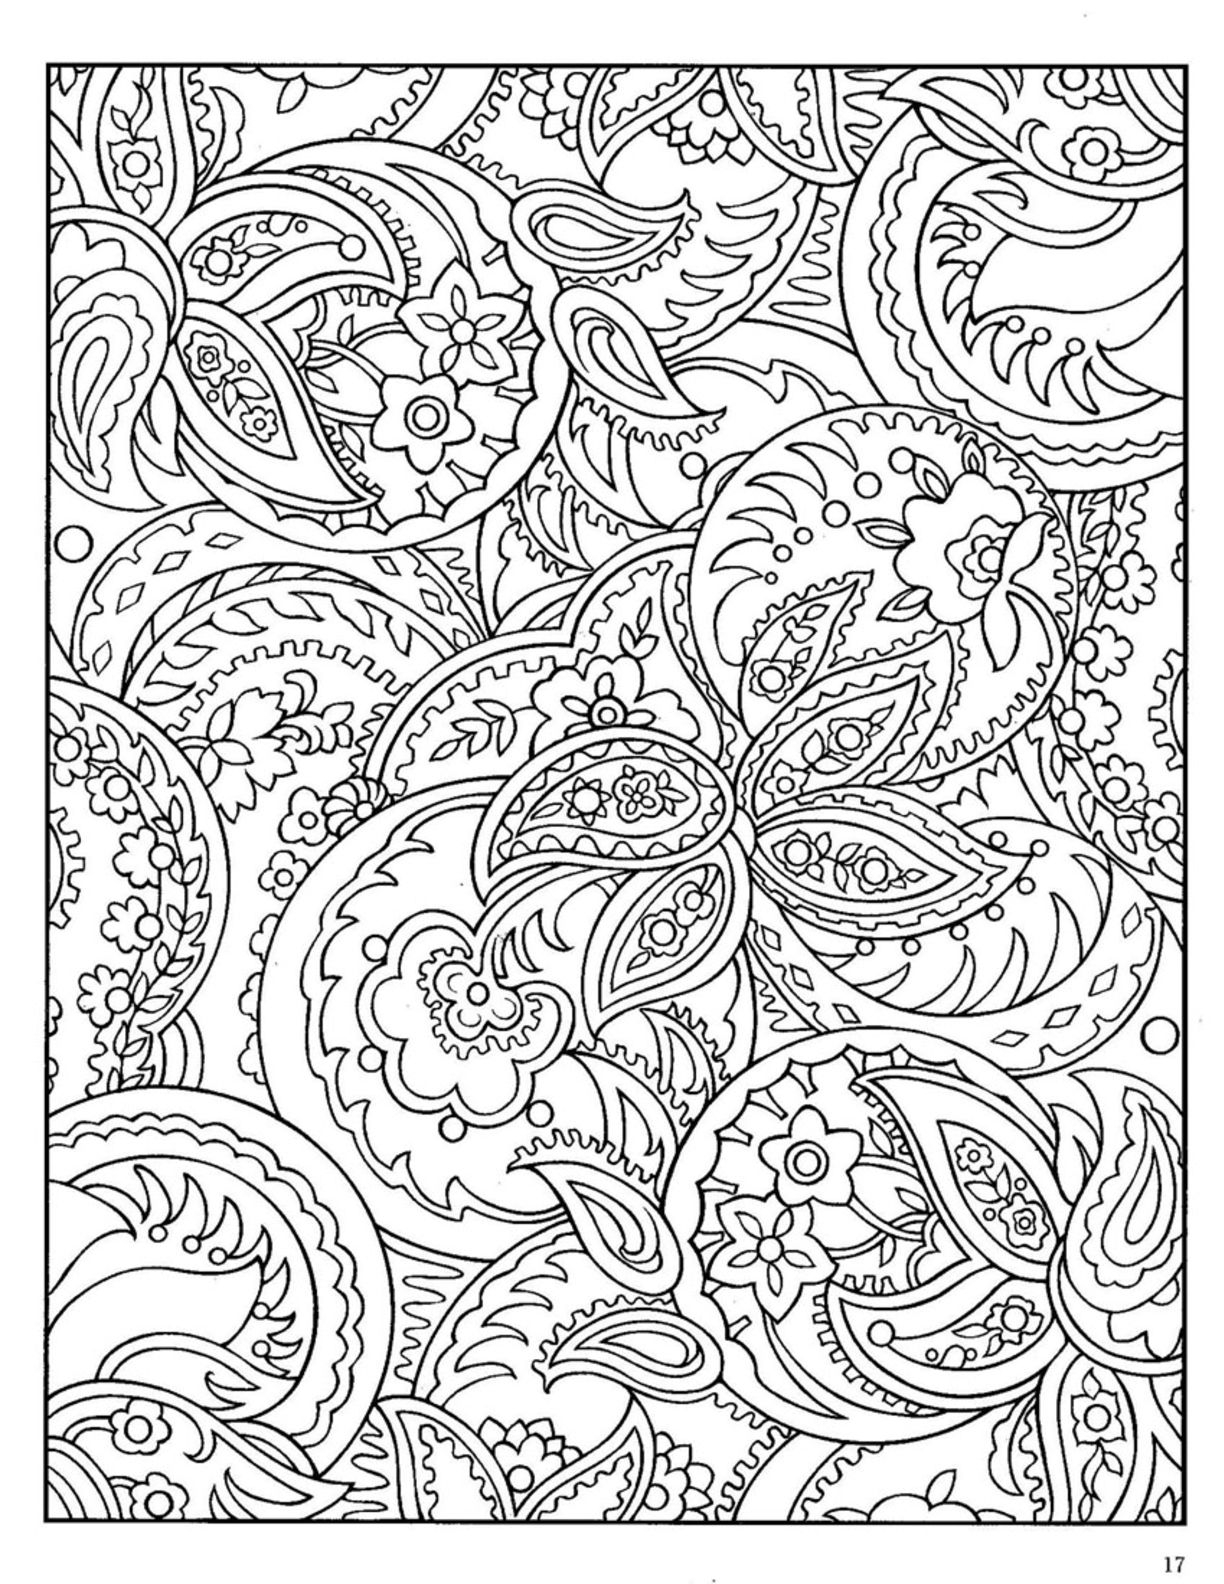 Easy Paisley Coloring Pages  to Print 13q - Free Download